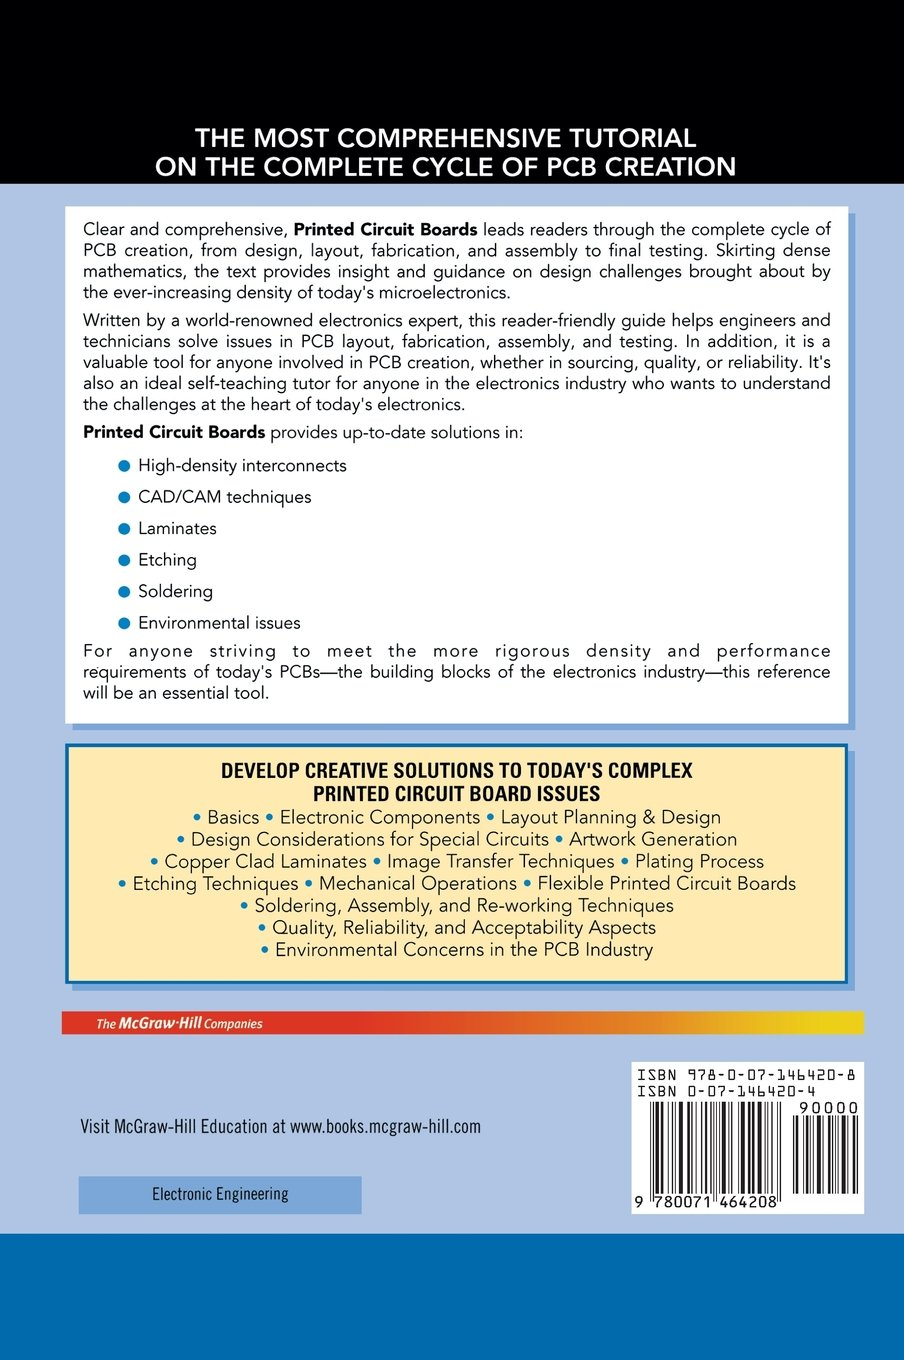 Buy Printed Circuit Boards Design Fabrication And Assembly Making A Board Website Layout In Photoshop Page 1 Of 4 Mcgraw Hill Electronic Engineering Book Online At Low Prices India